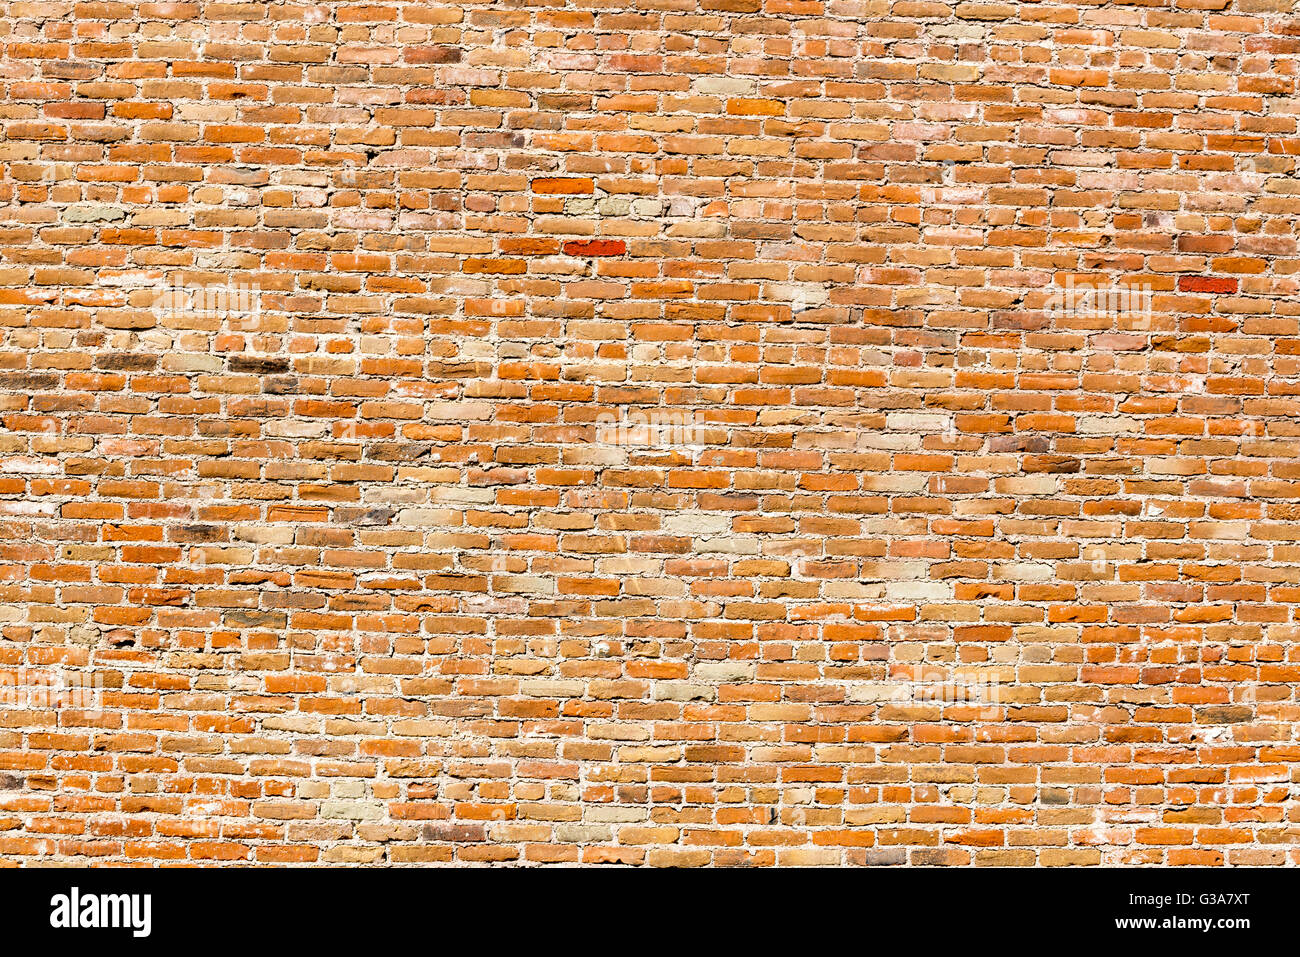 Brick wall of the historic Commercial Company Building in Huntington, Oregon. - Stock Image